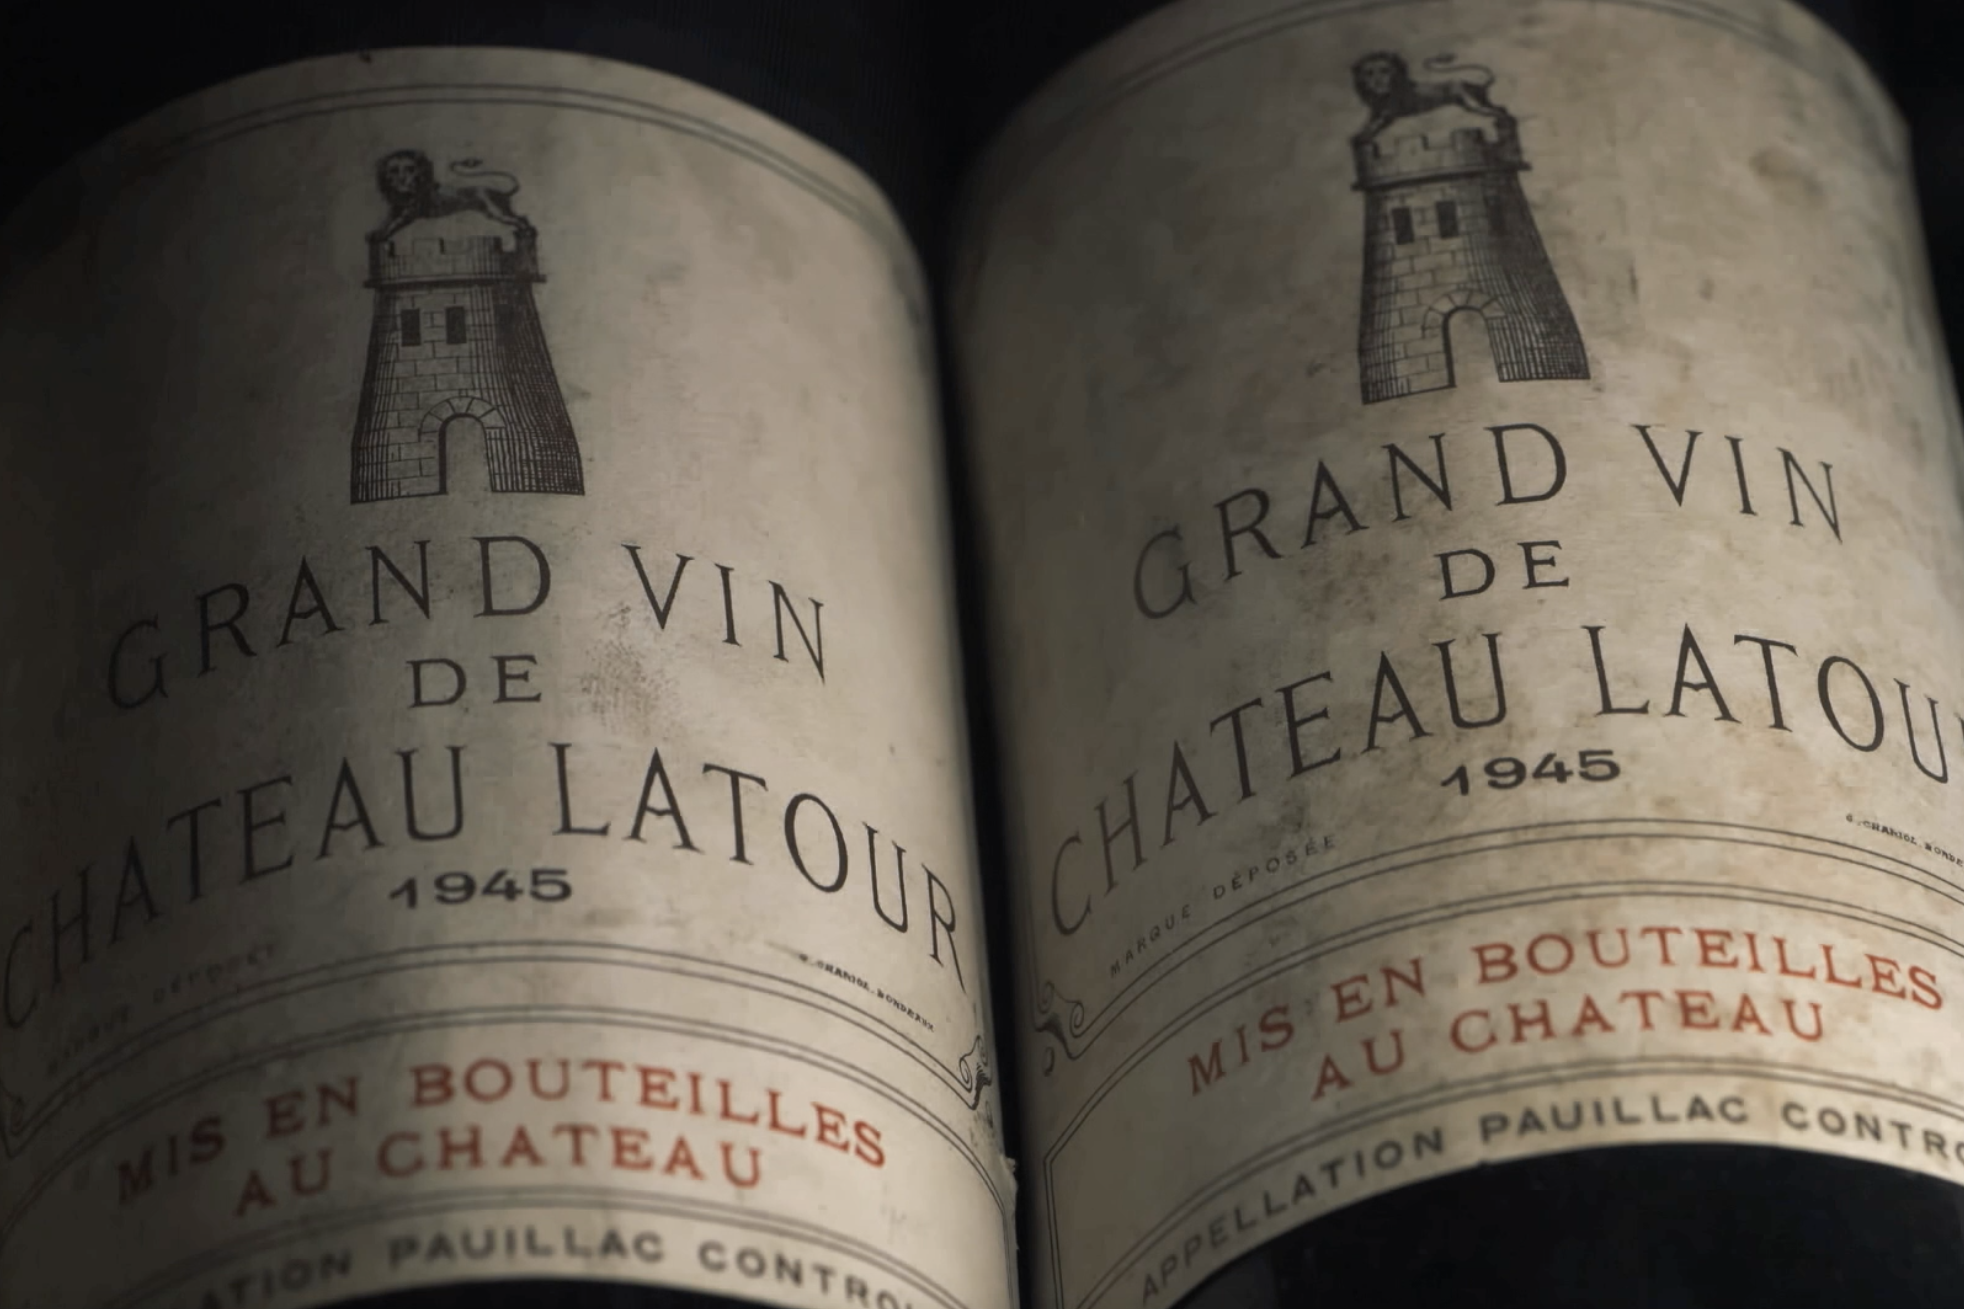 A vast collection of more than 1,000 bottles, particularly from esteemed châteaux from Bordeaux and Burgundy.